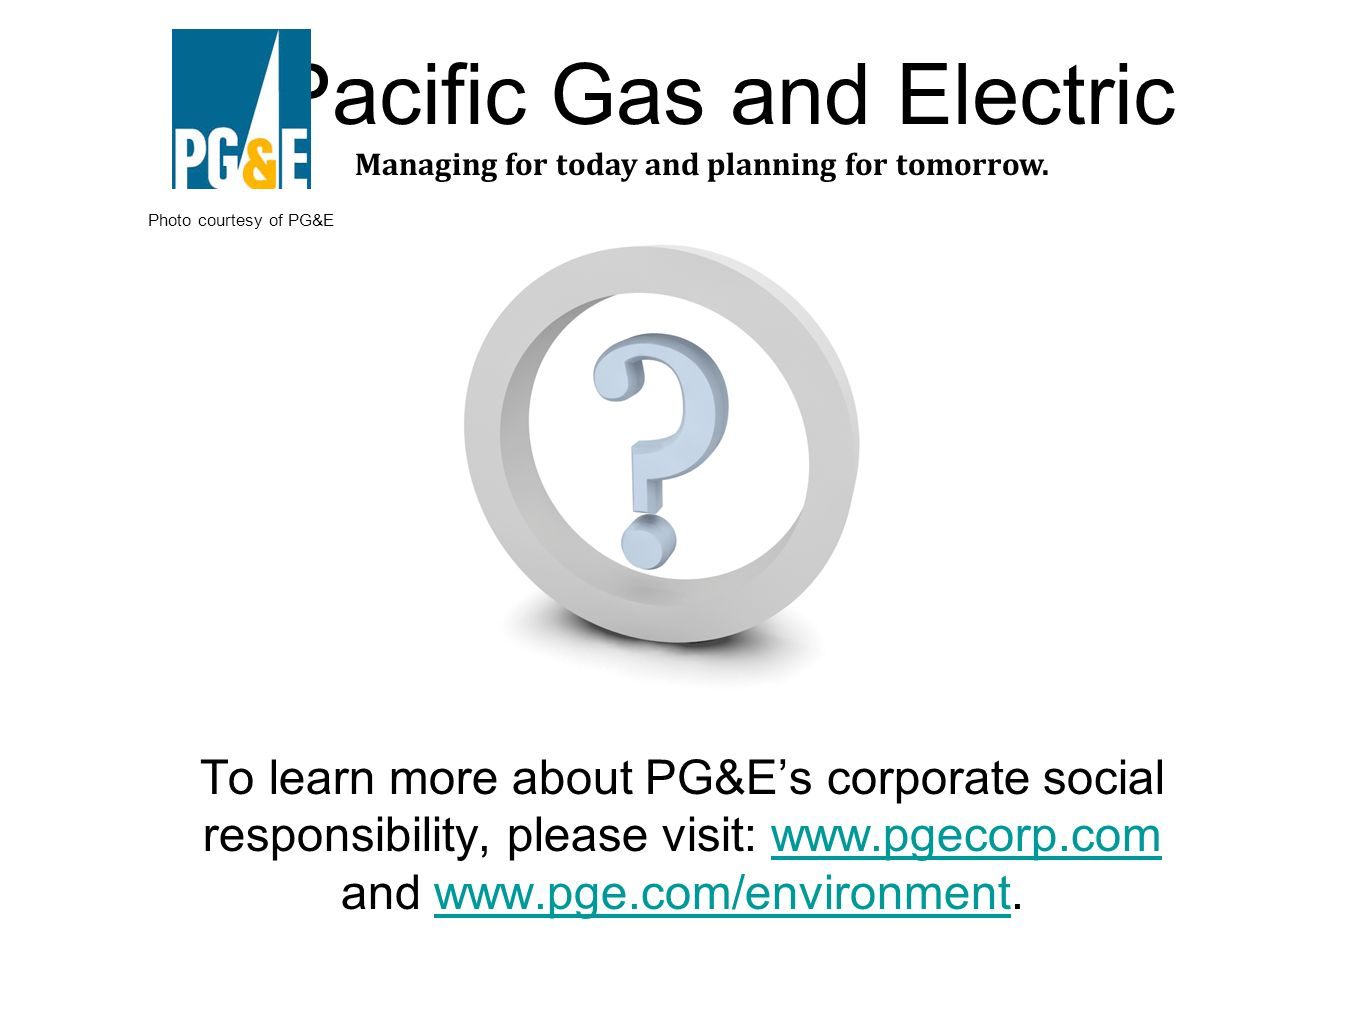 To learn more about PG&Es corporate social responsibility, please visit: www.pgecorp.com and www.pge.com/environment.www.pgecorp.comwww.pge.com/environment Managing for today and planning for tomorrow.